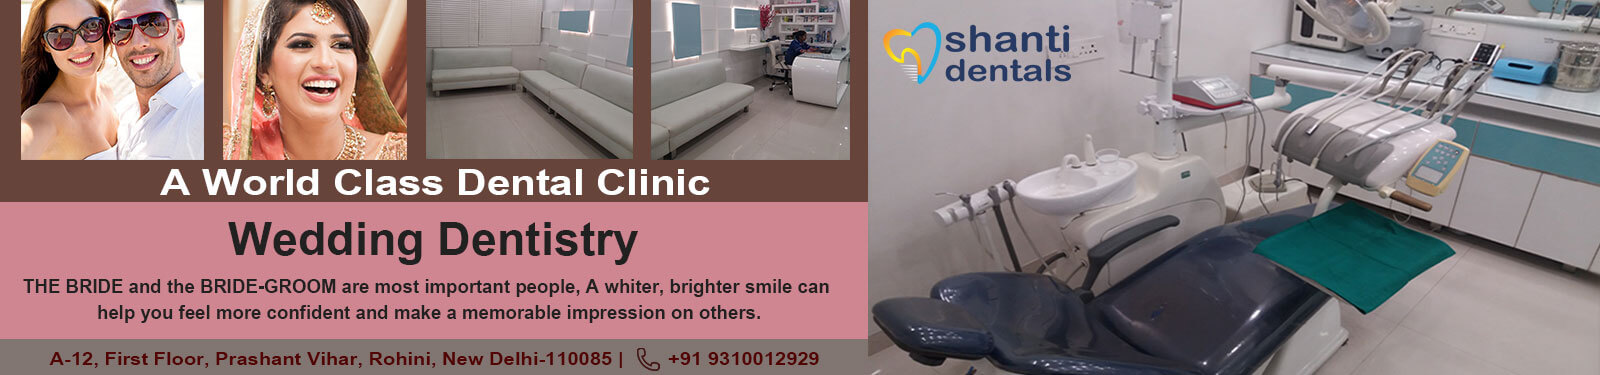 Wedding and Dentistry Care in Rohini Delhi by Shanti Dentals